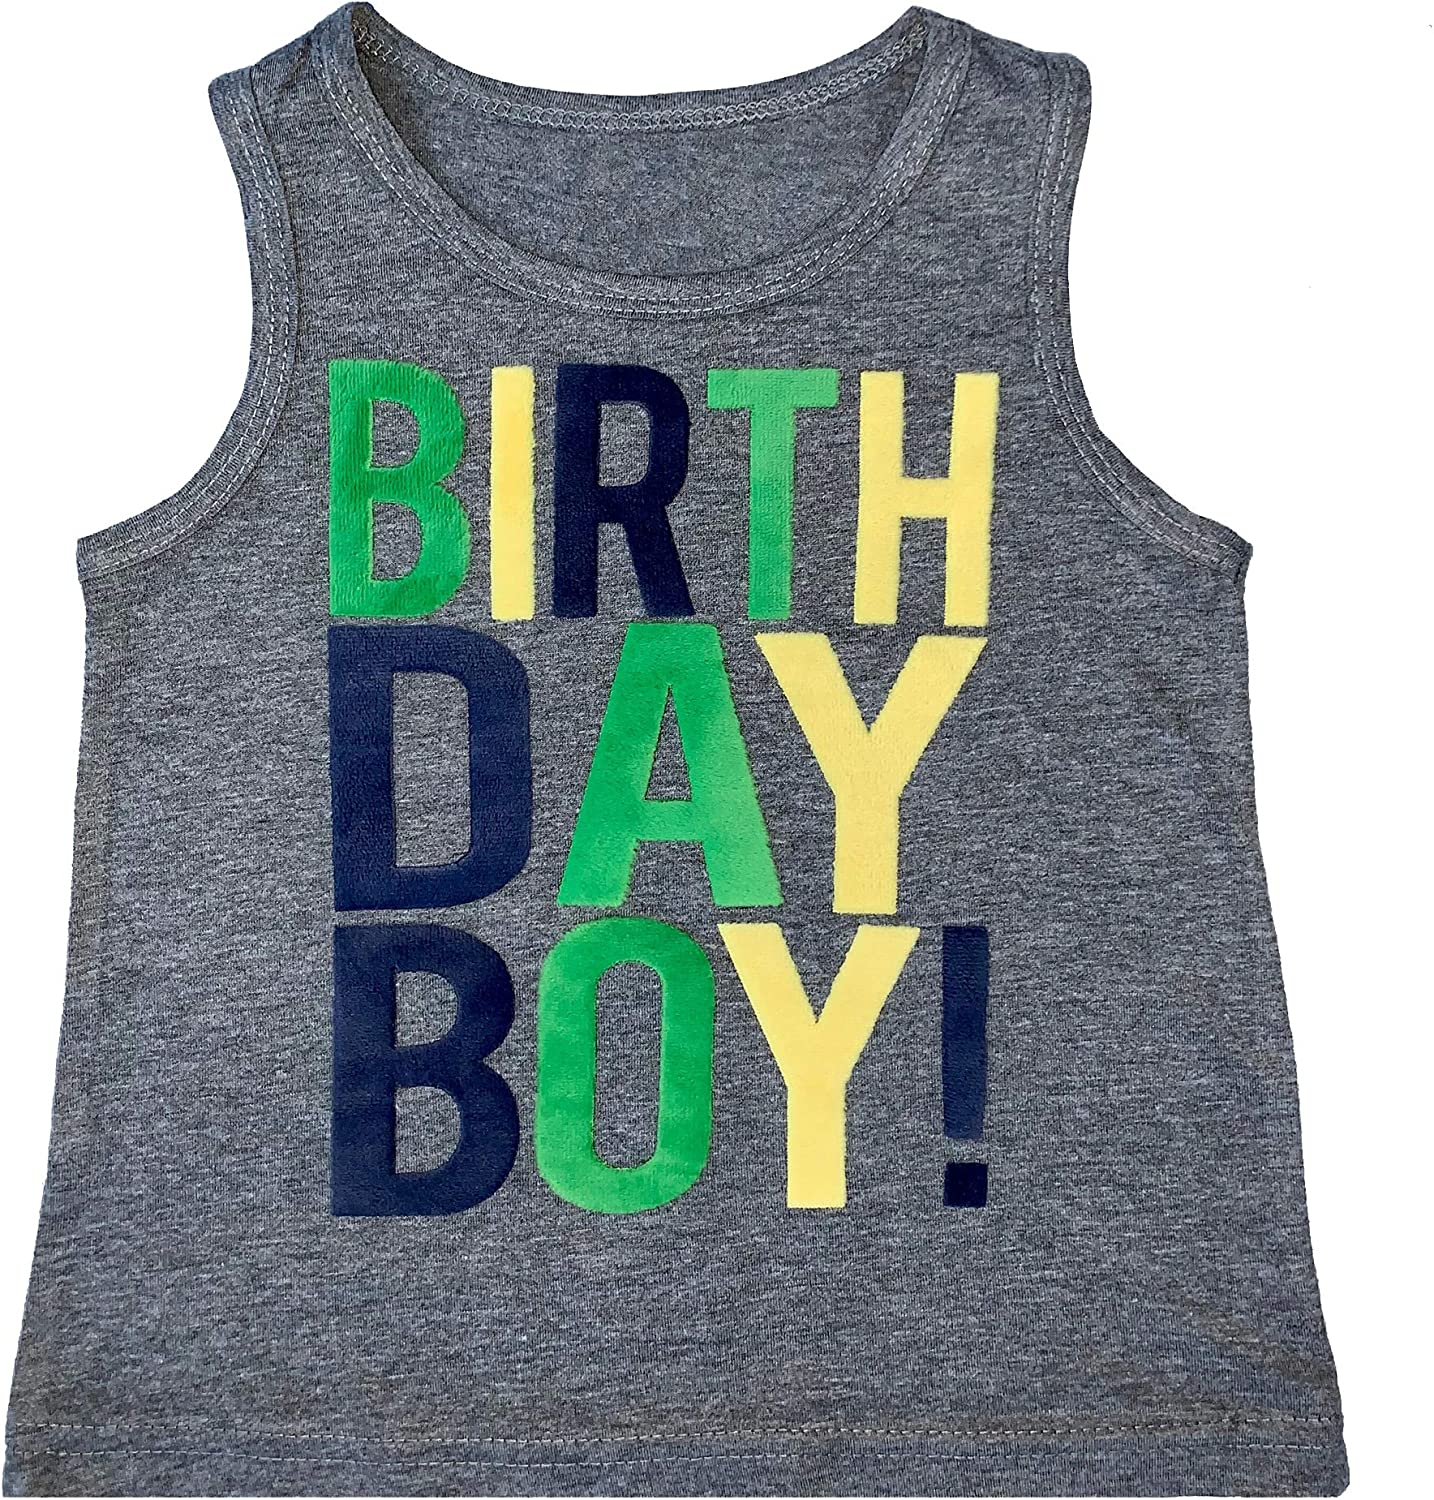 SoRock Birthday Boy Toddler Kids T-Shirt 1st, 2nd, 3rd, 4th, 5th, Youth Small-Youth Large